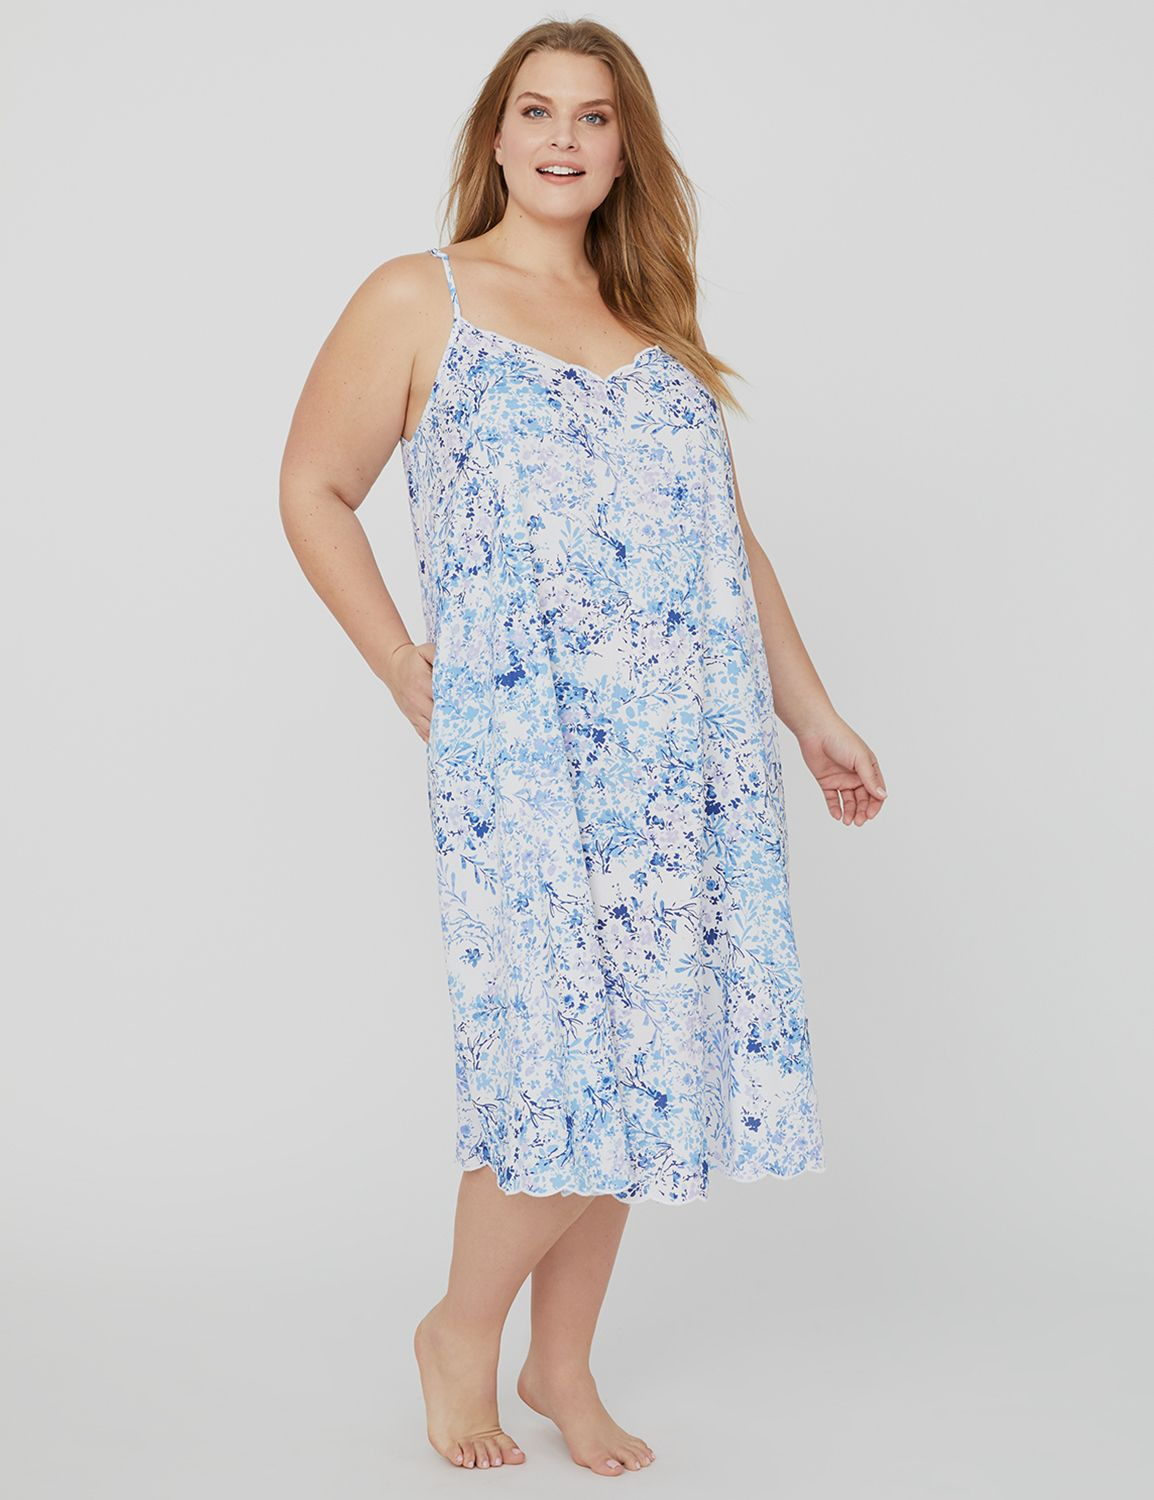 Scalloped-Edge Sleep Gown 1088493- Printed Challis Woven Midi MP-300096260